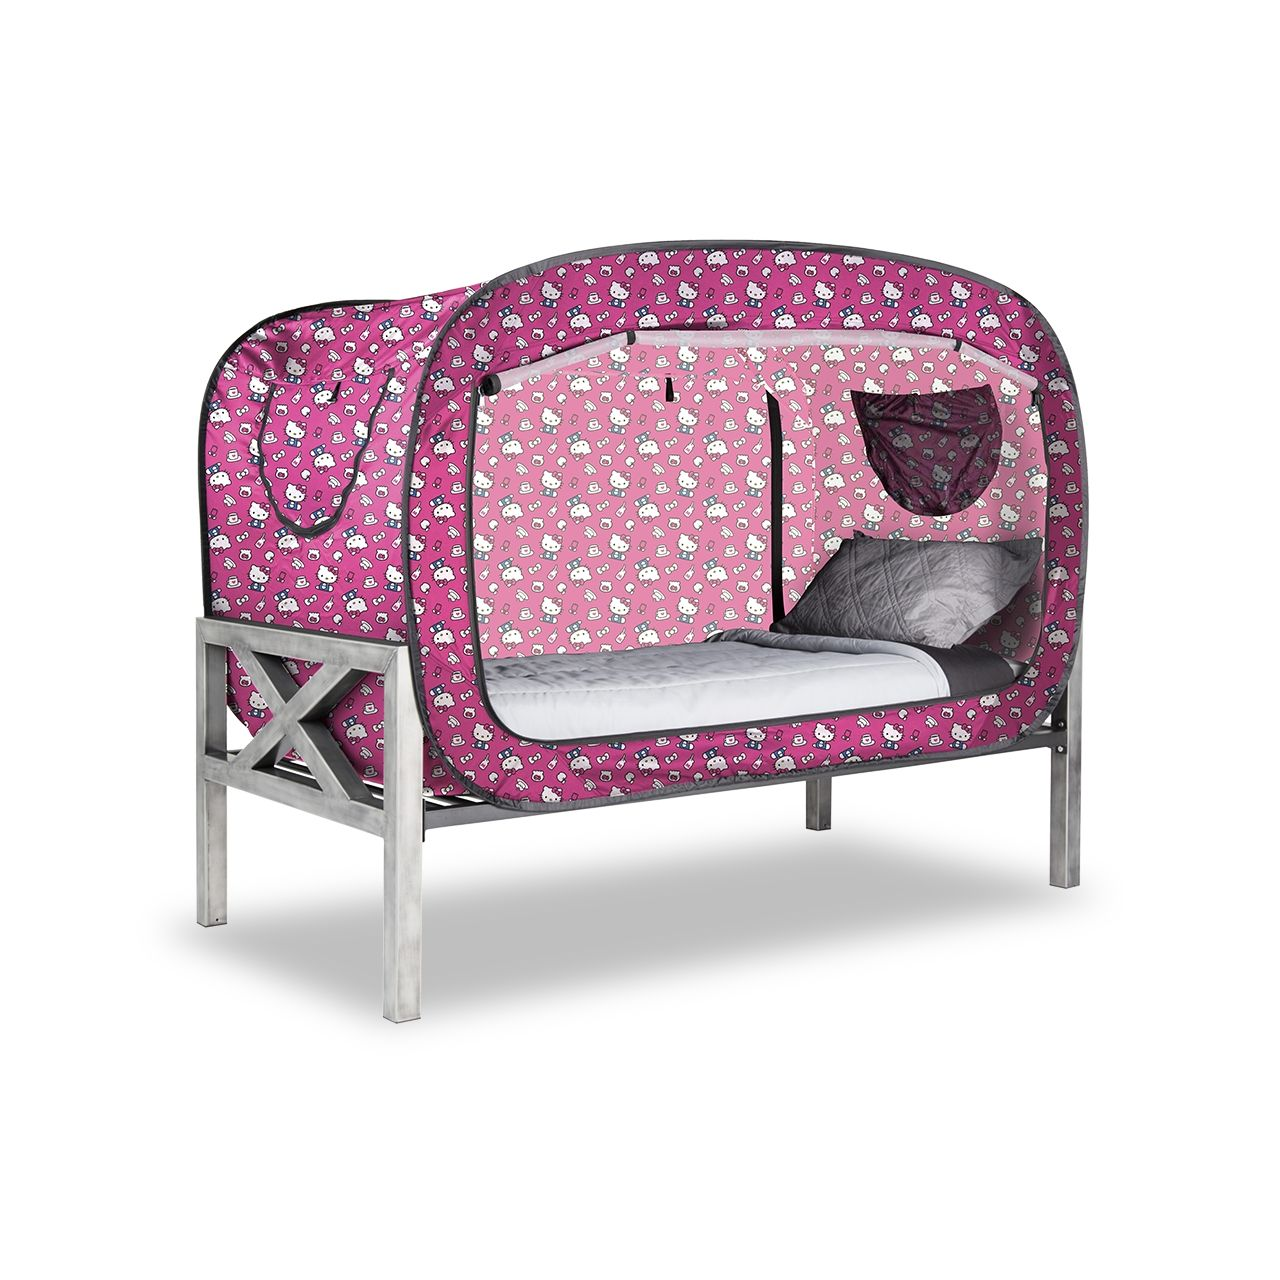 The Hello Kitty Bed Tent From Privacy Pop